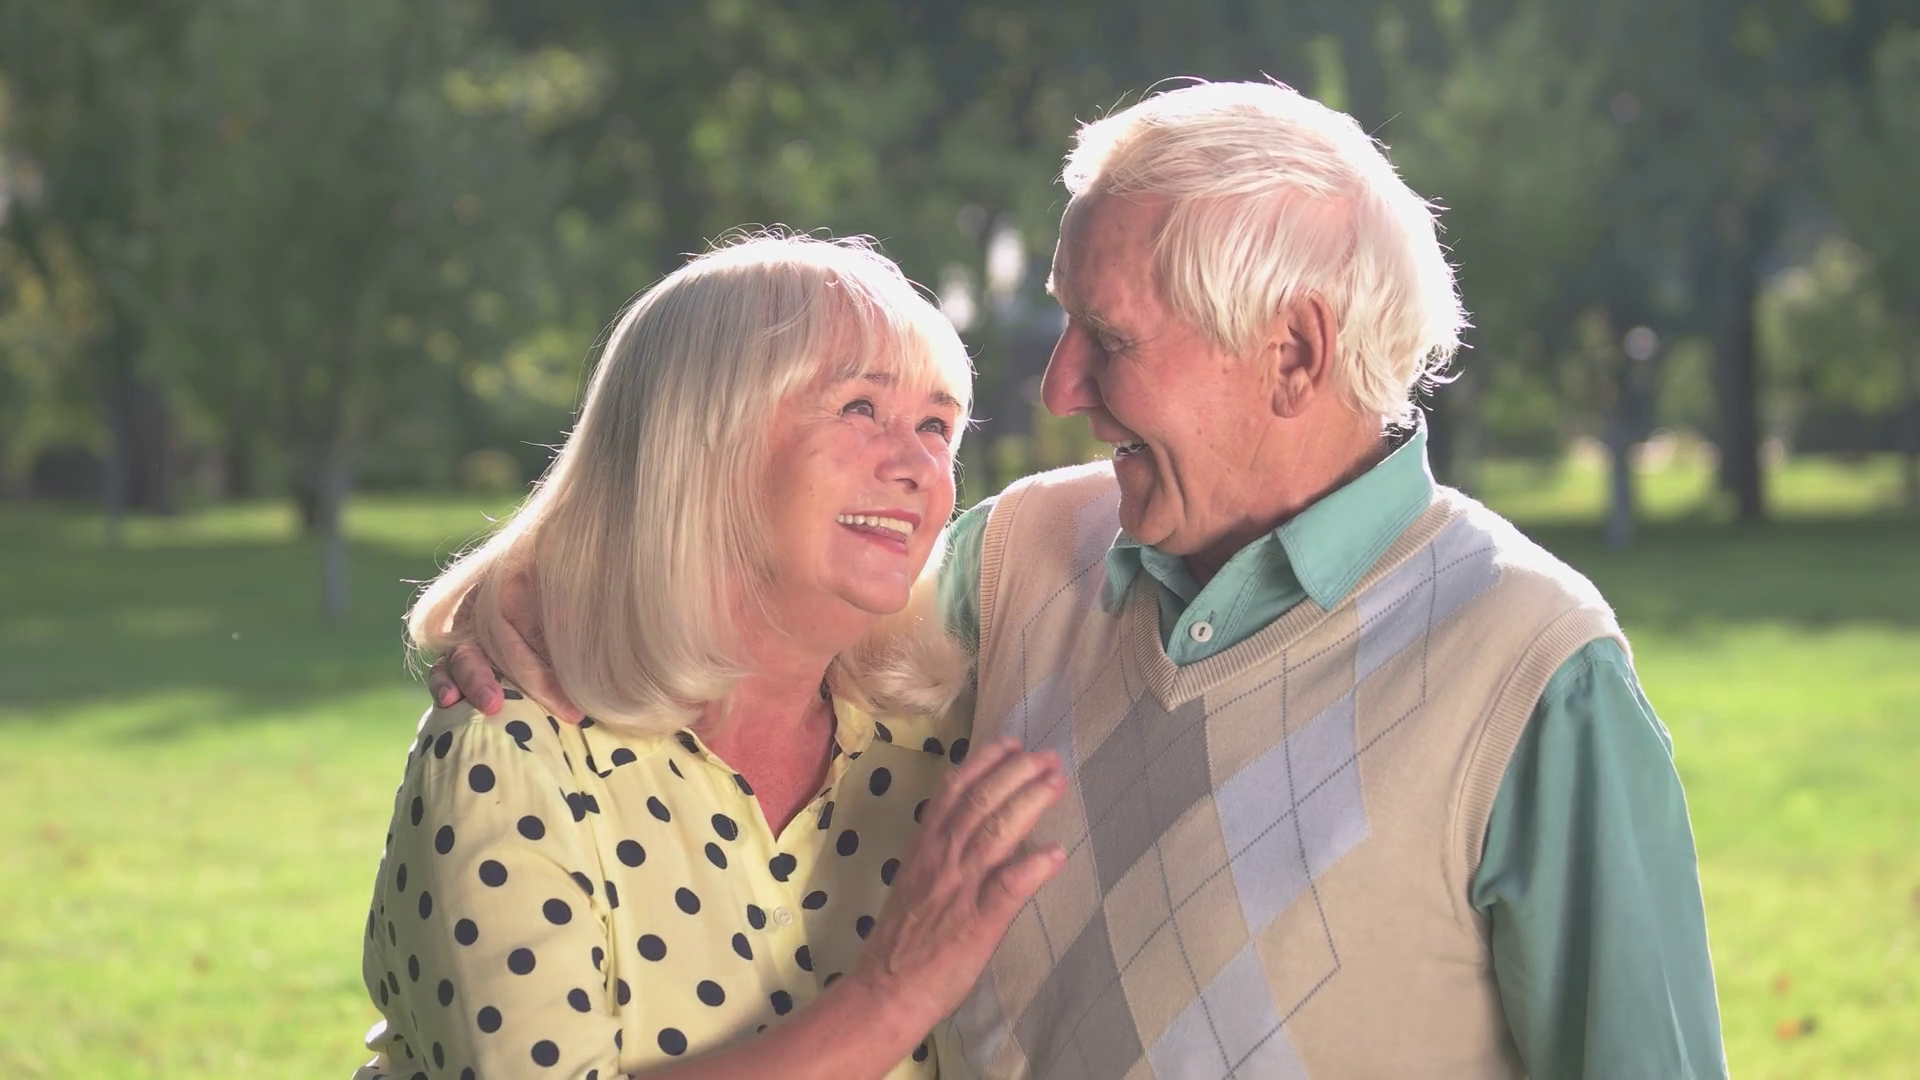 Retired couple looking at each other and smiling outside in park